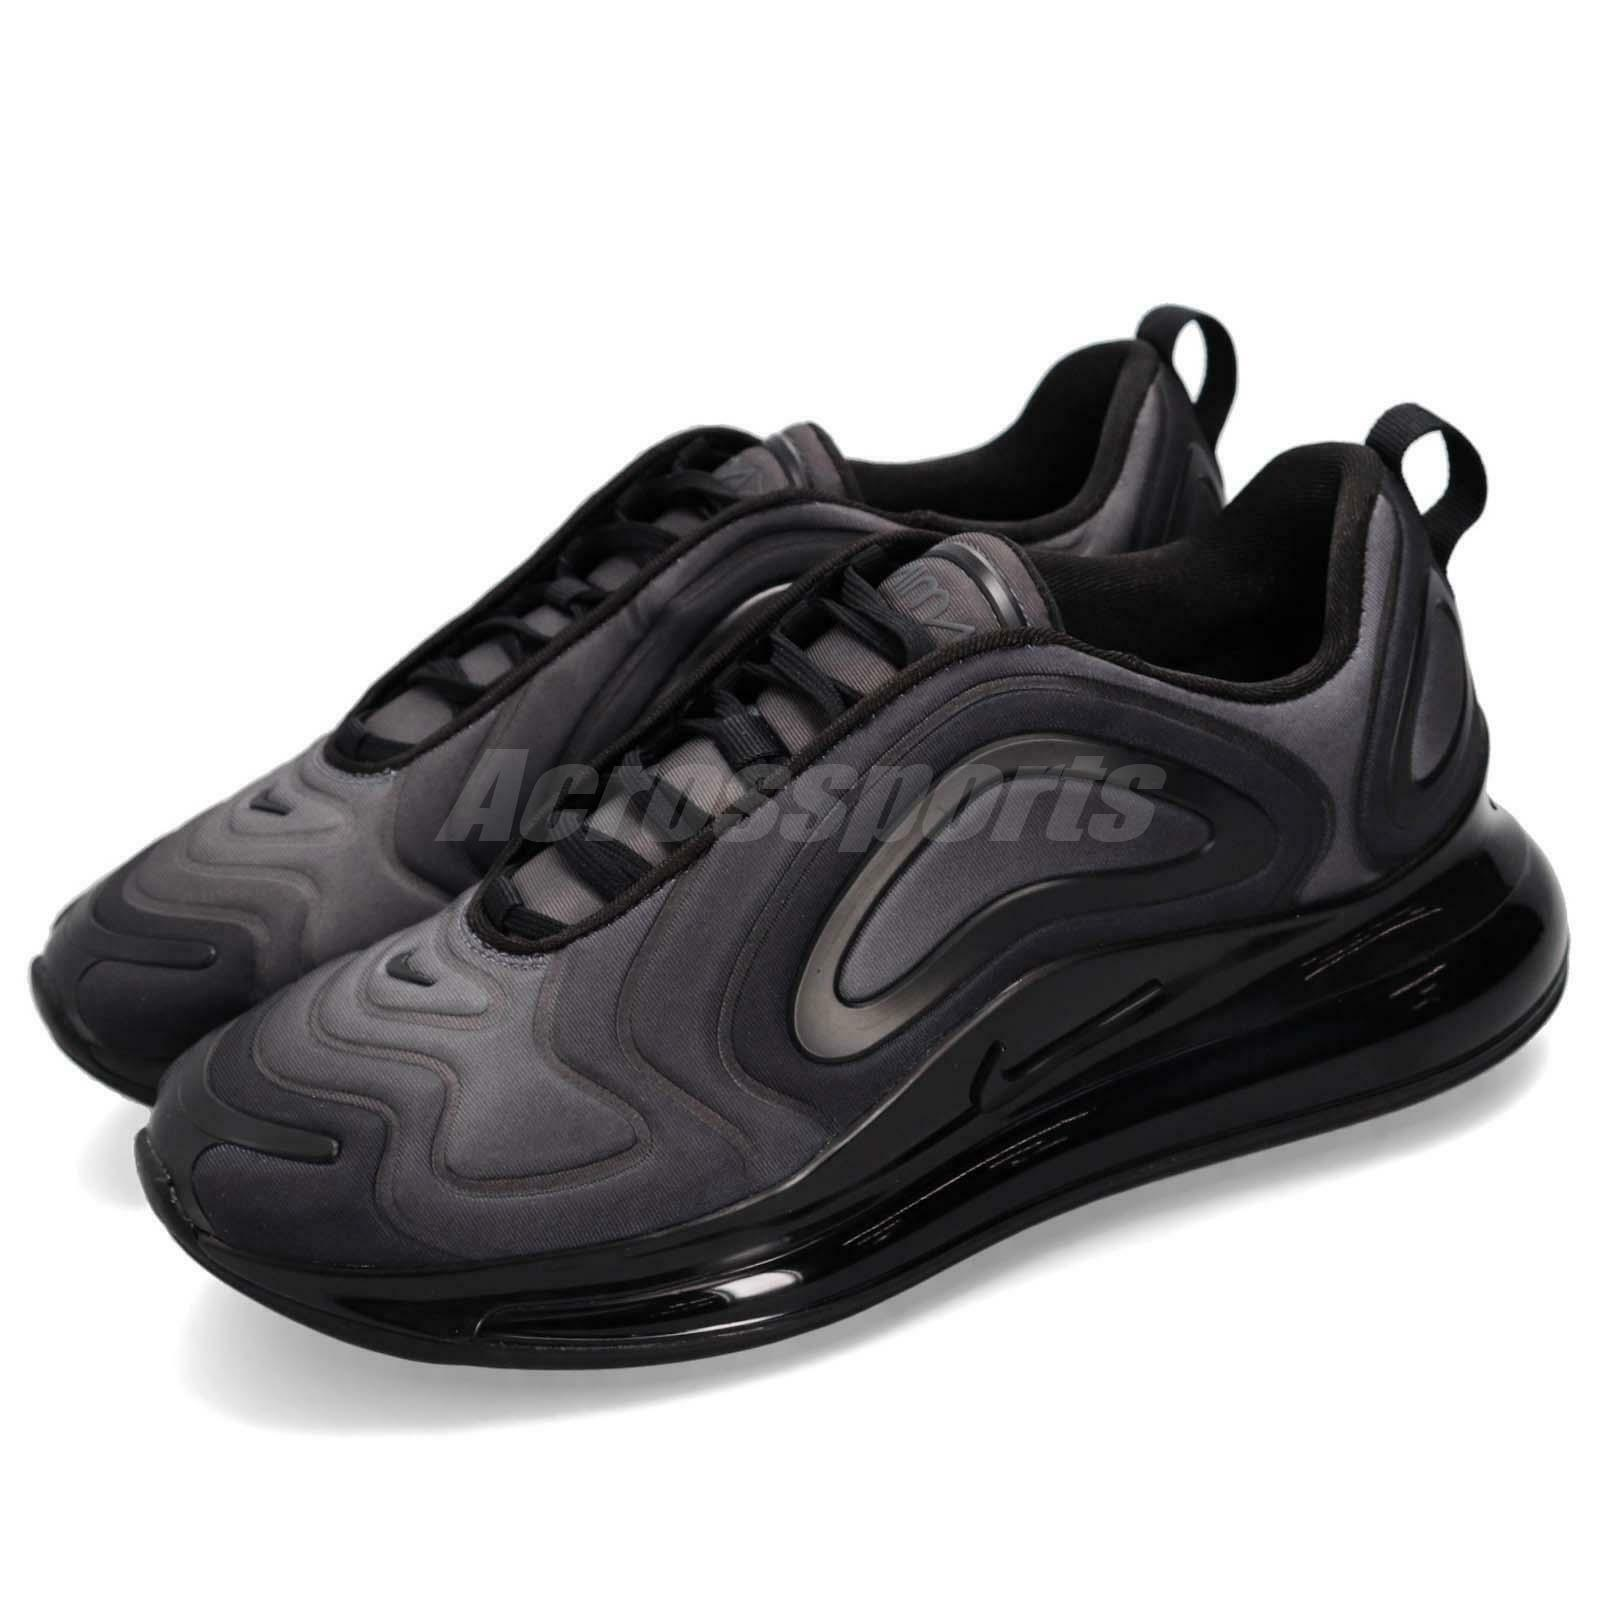 Nike Air Max 720 Total Eclipse Black Men Running shoes Sneakers AO2924-004